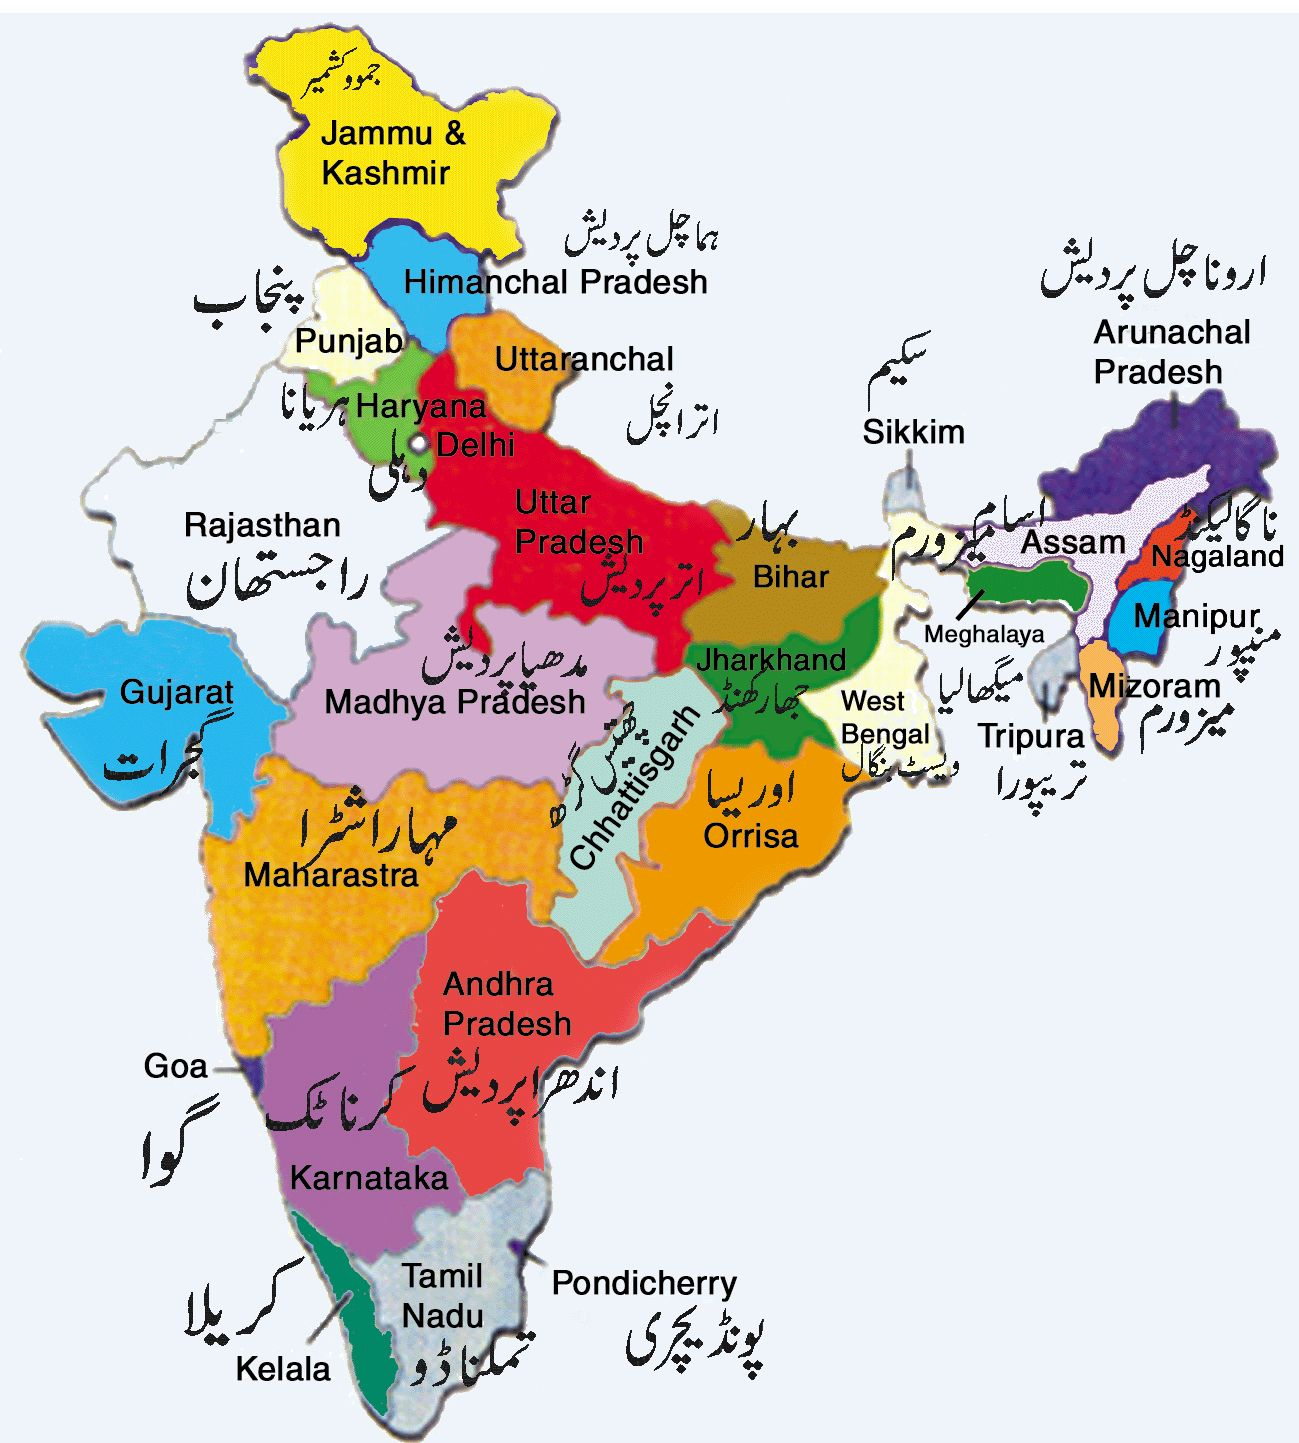 Urdu Map Of India Carte De LInde En Ourdou MAPS N GEOGRAPHY - Language wise map of world